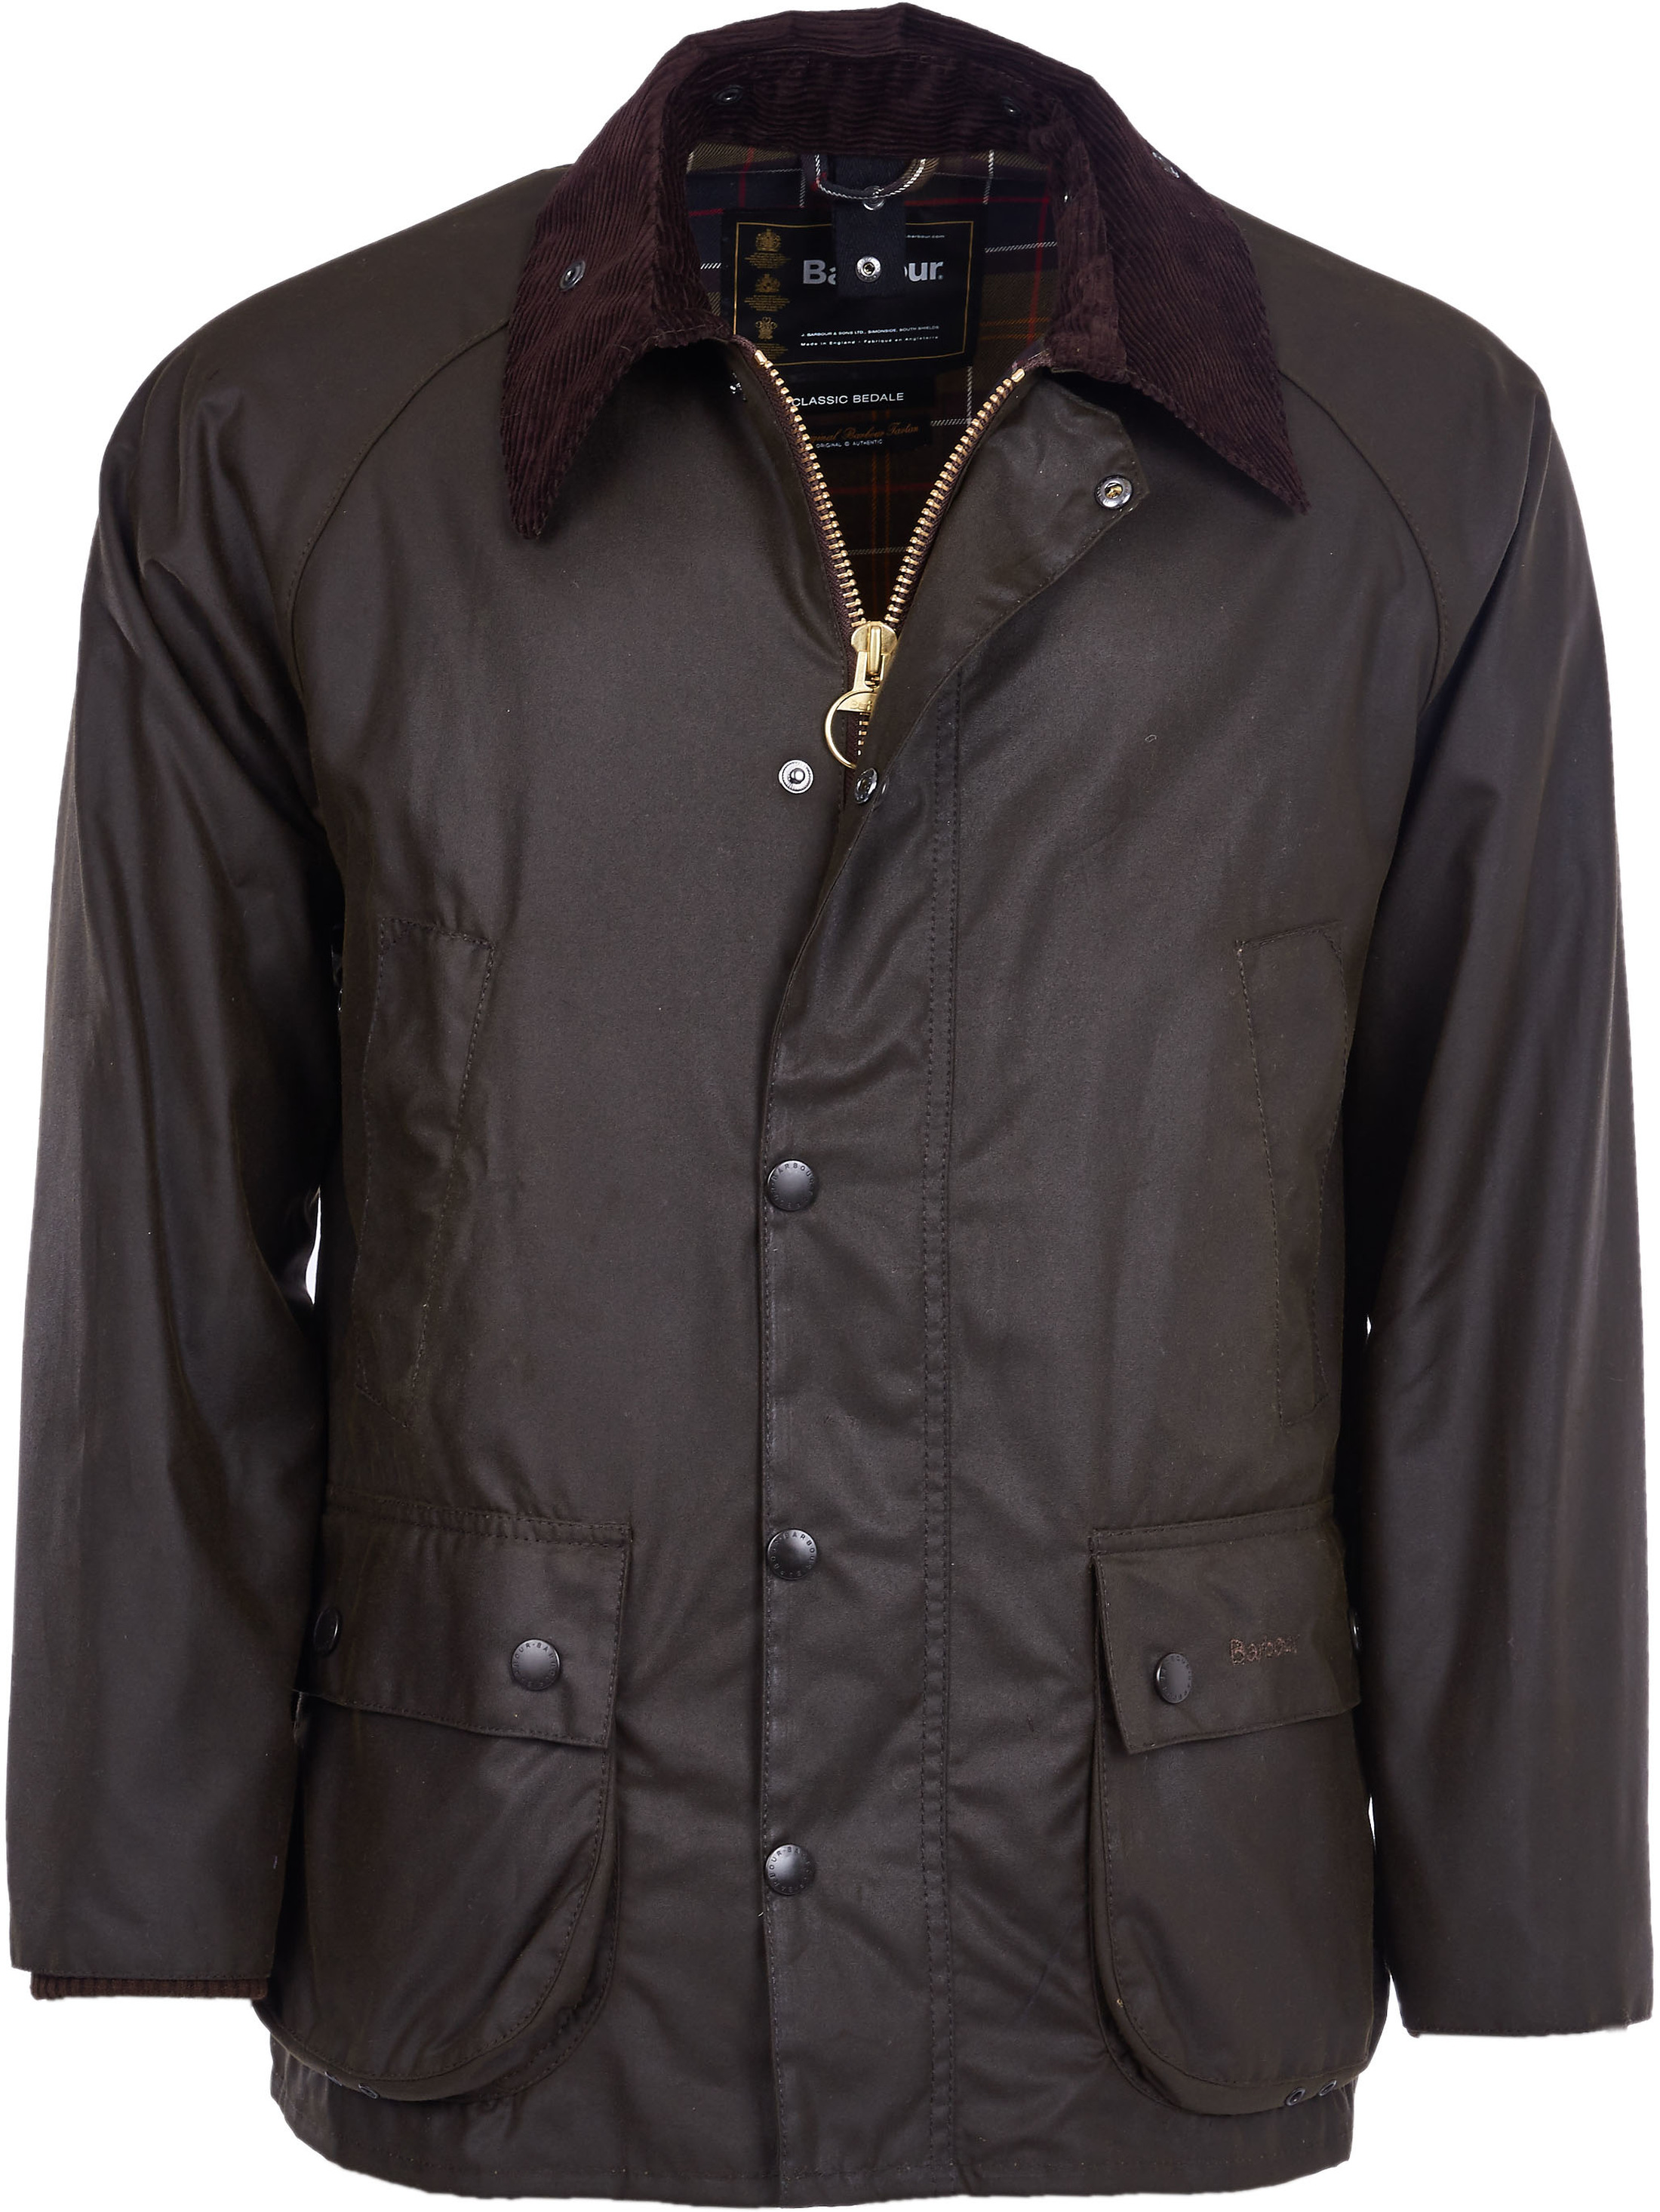 Barbour Bedale Classic Wachsjacke Olivgrün